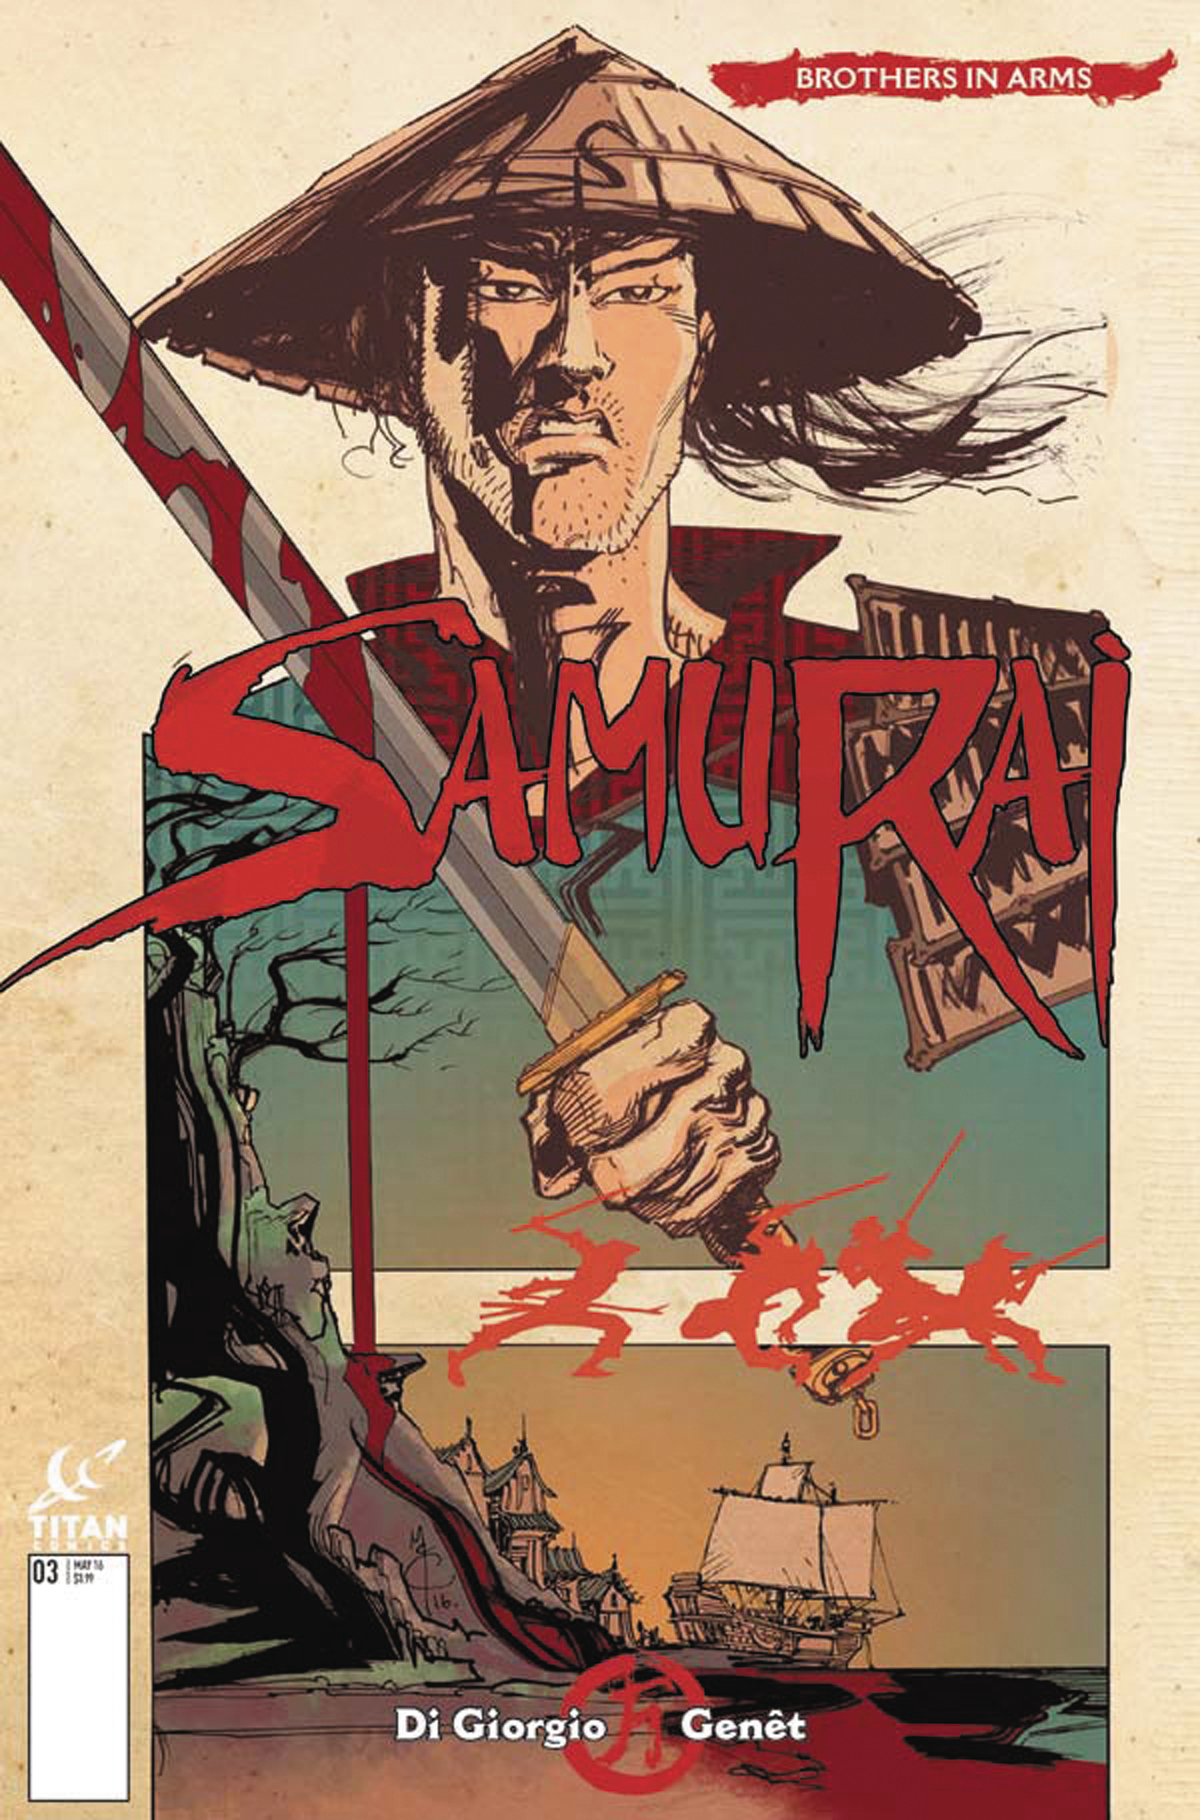 SAMURAI BROTHERS IN ARMS #1 (OF 6) CVR C MCCREA (MR)